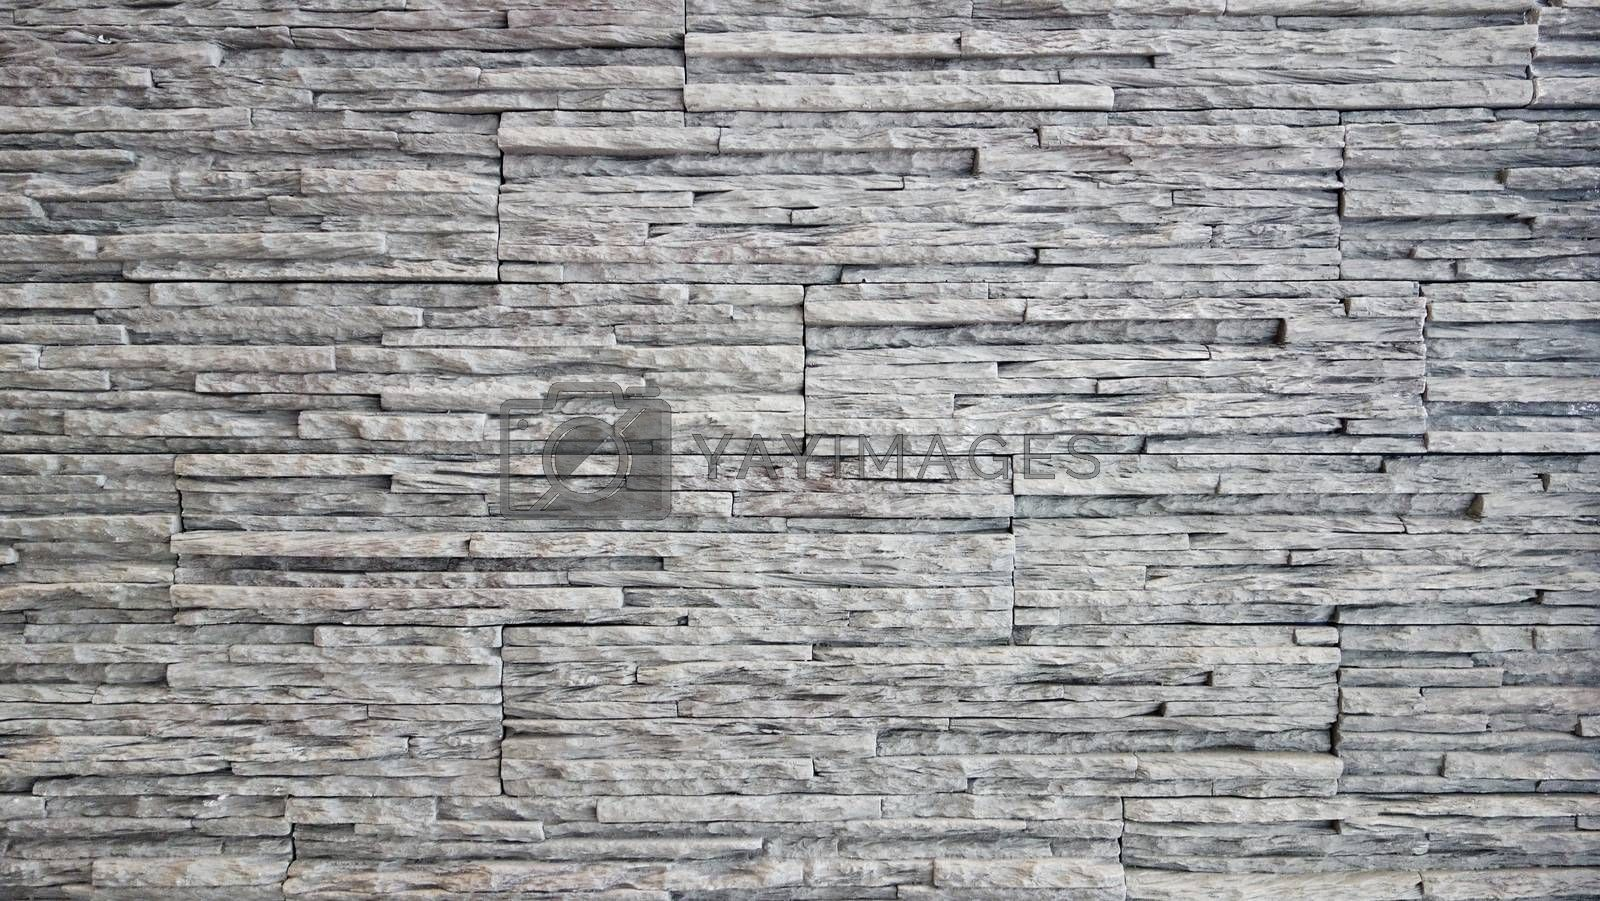 Stone wall texture, pattern of decorative stone wall background